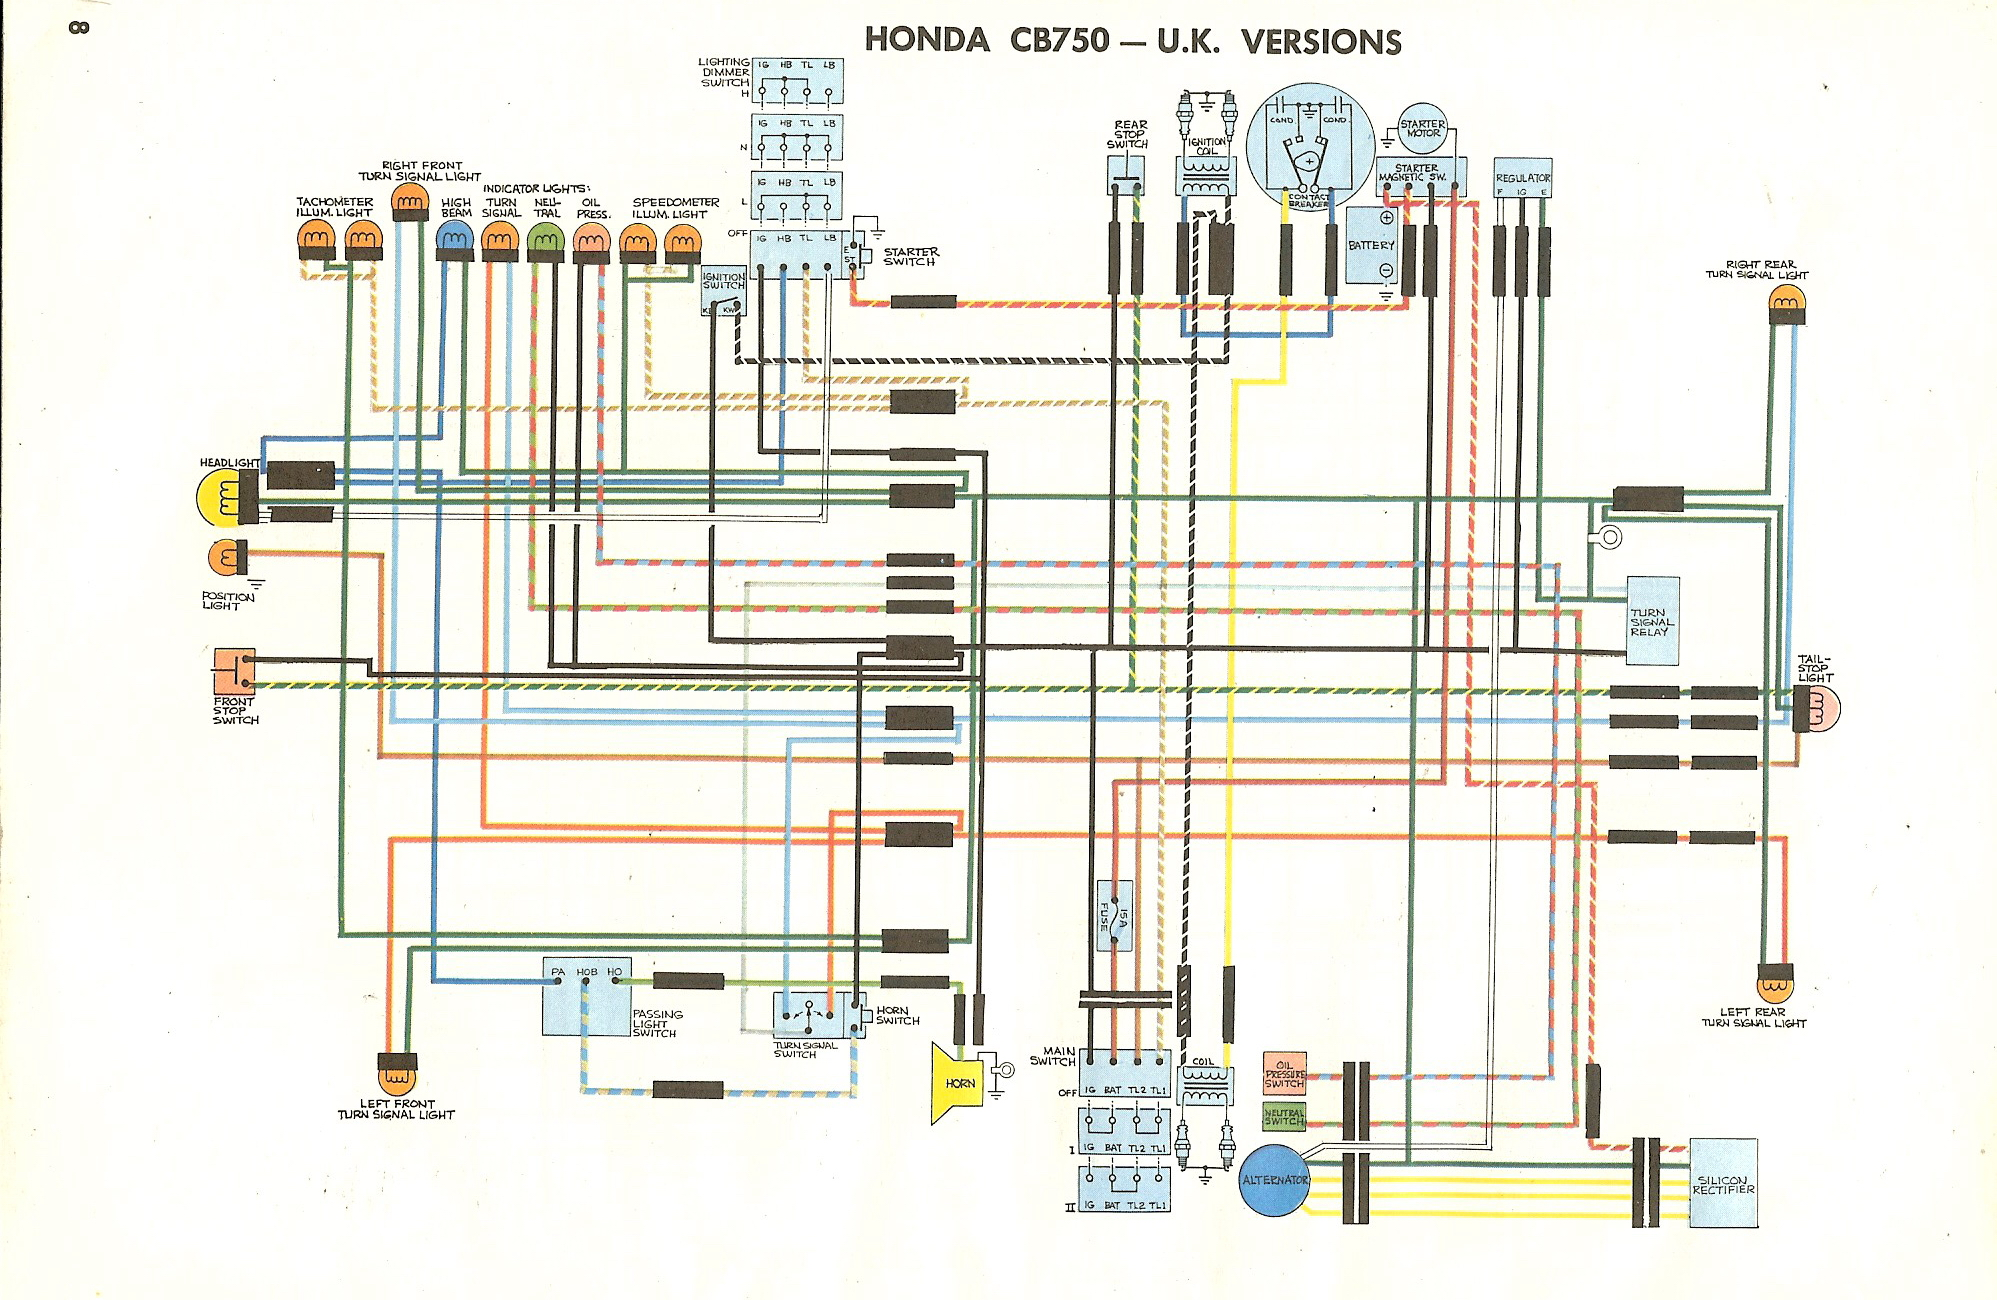 cb750k 1980 CB750 Wiring-Diagram Cb750 K0 Wiring Diagram #2